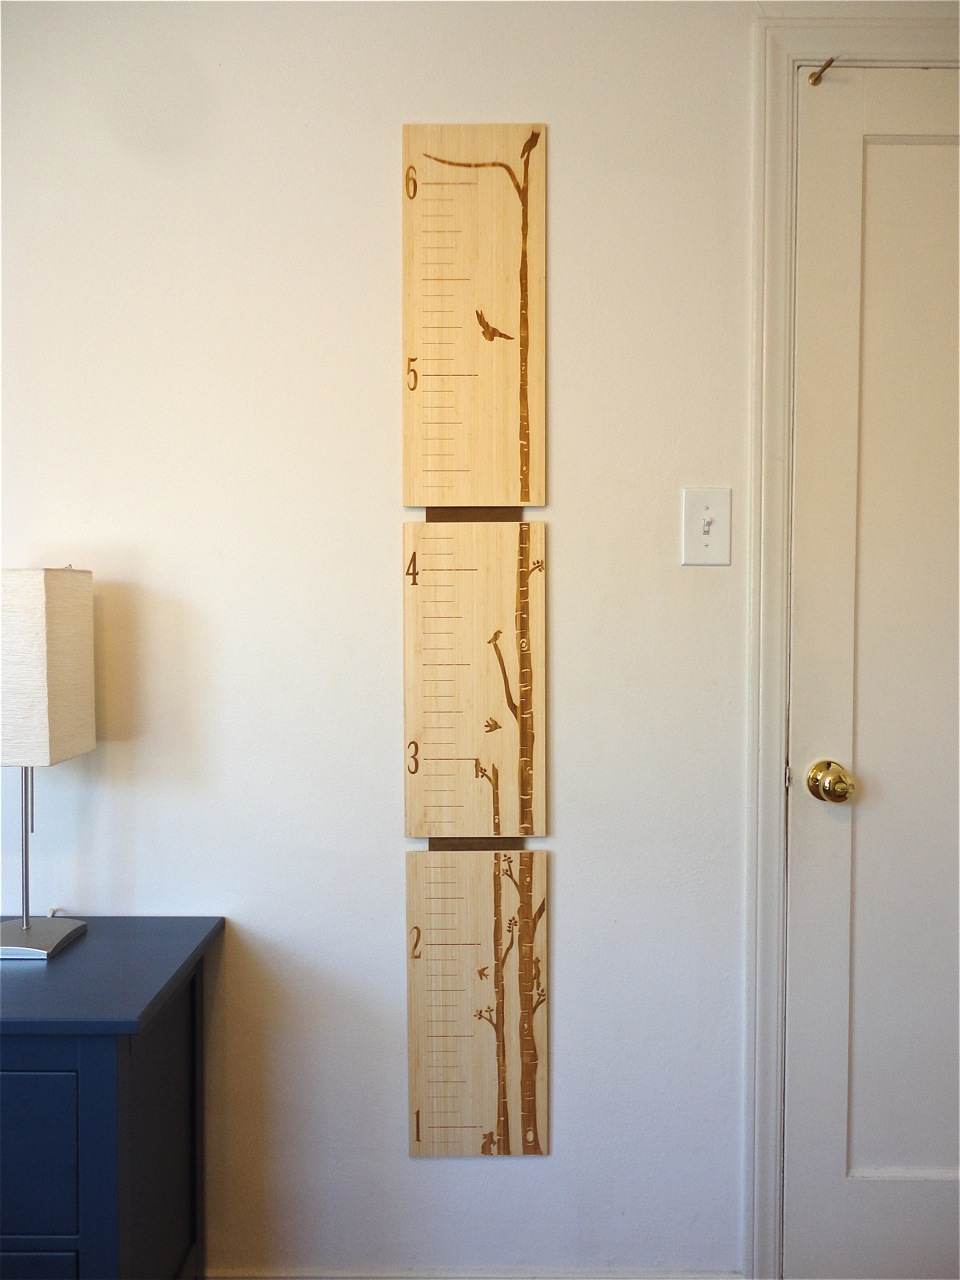 Bamboo growth chart for kids by robby cuthbert. Laser etched with the option of customizing by adding your child's name! This design features a birch tree forest with woodland creatures.